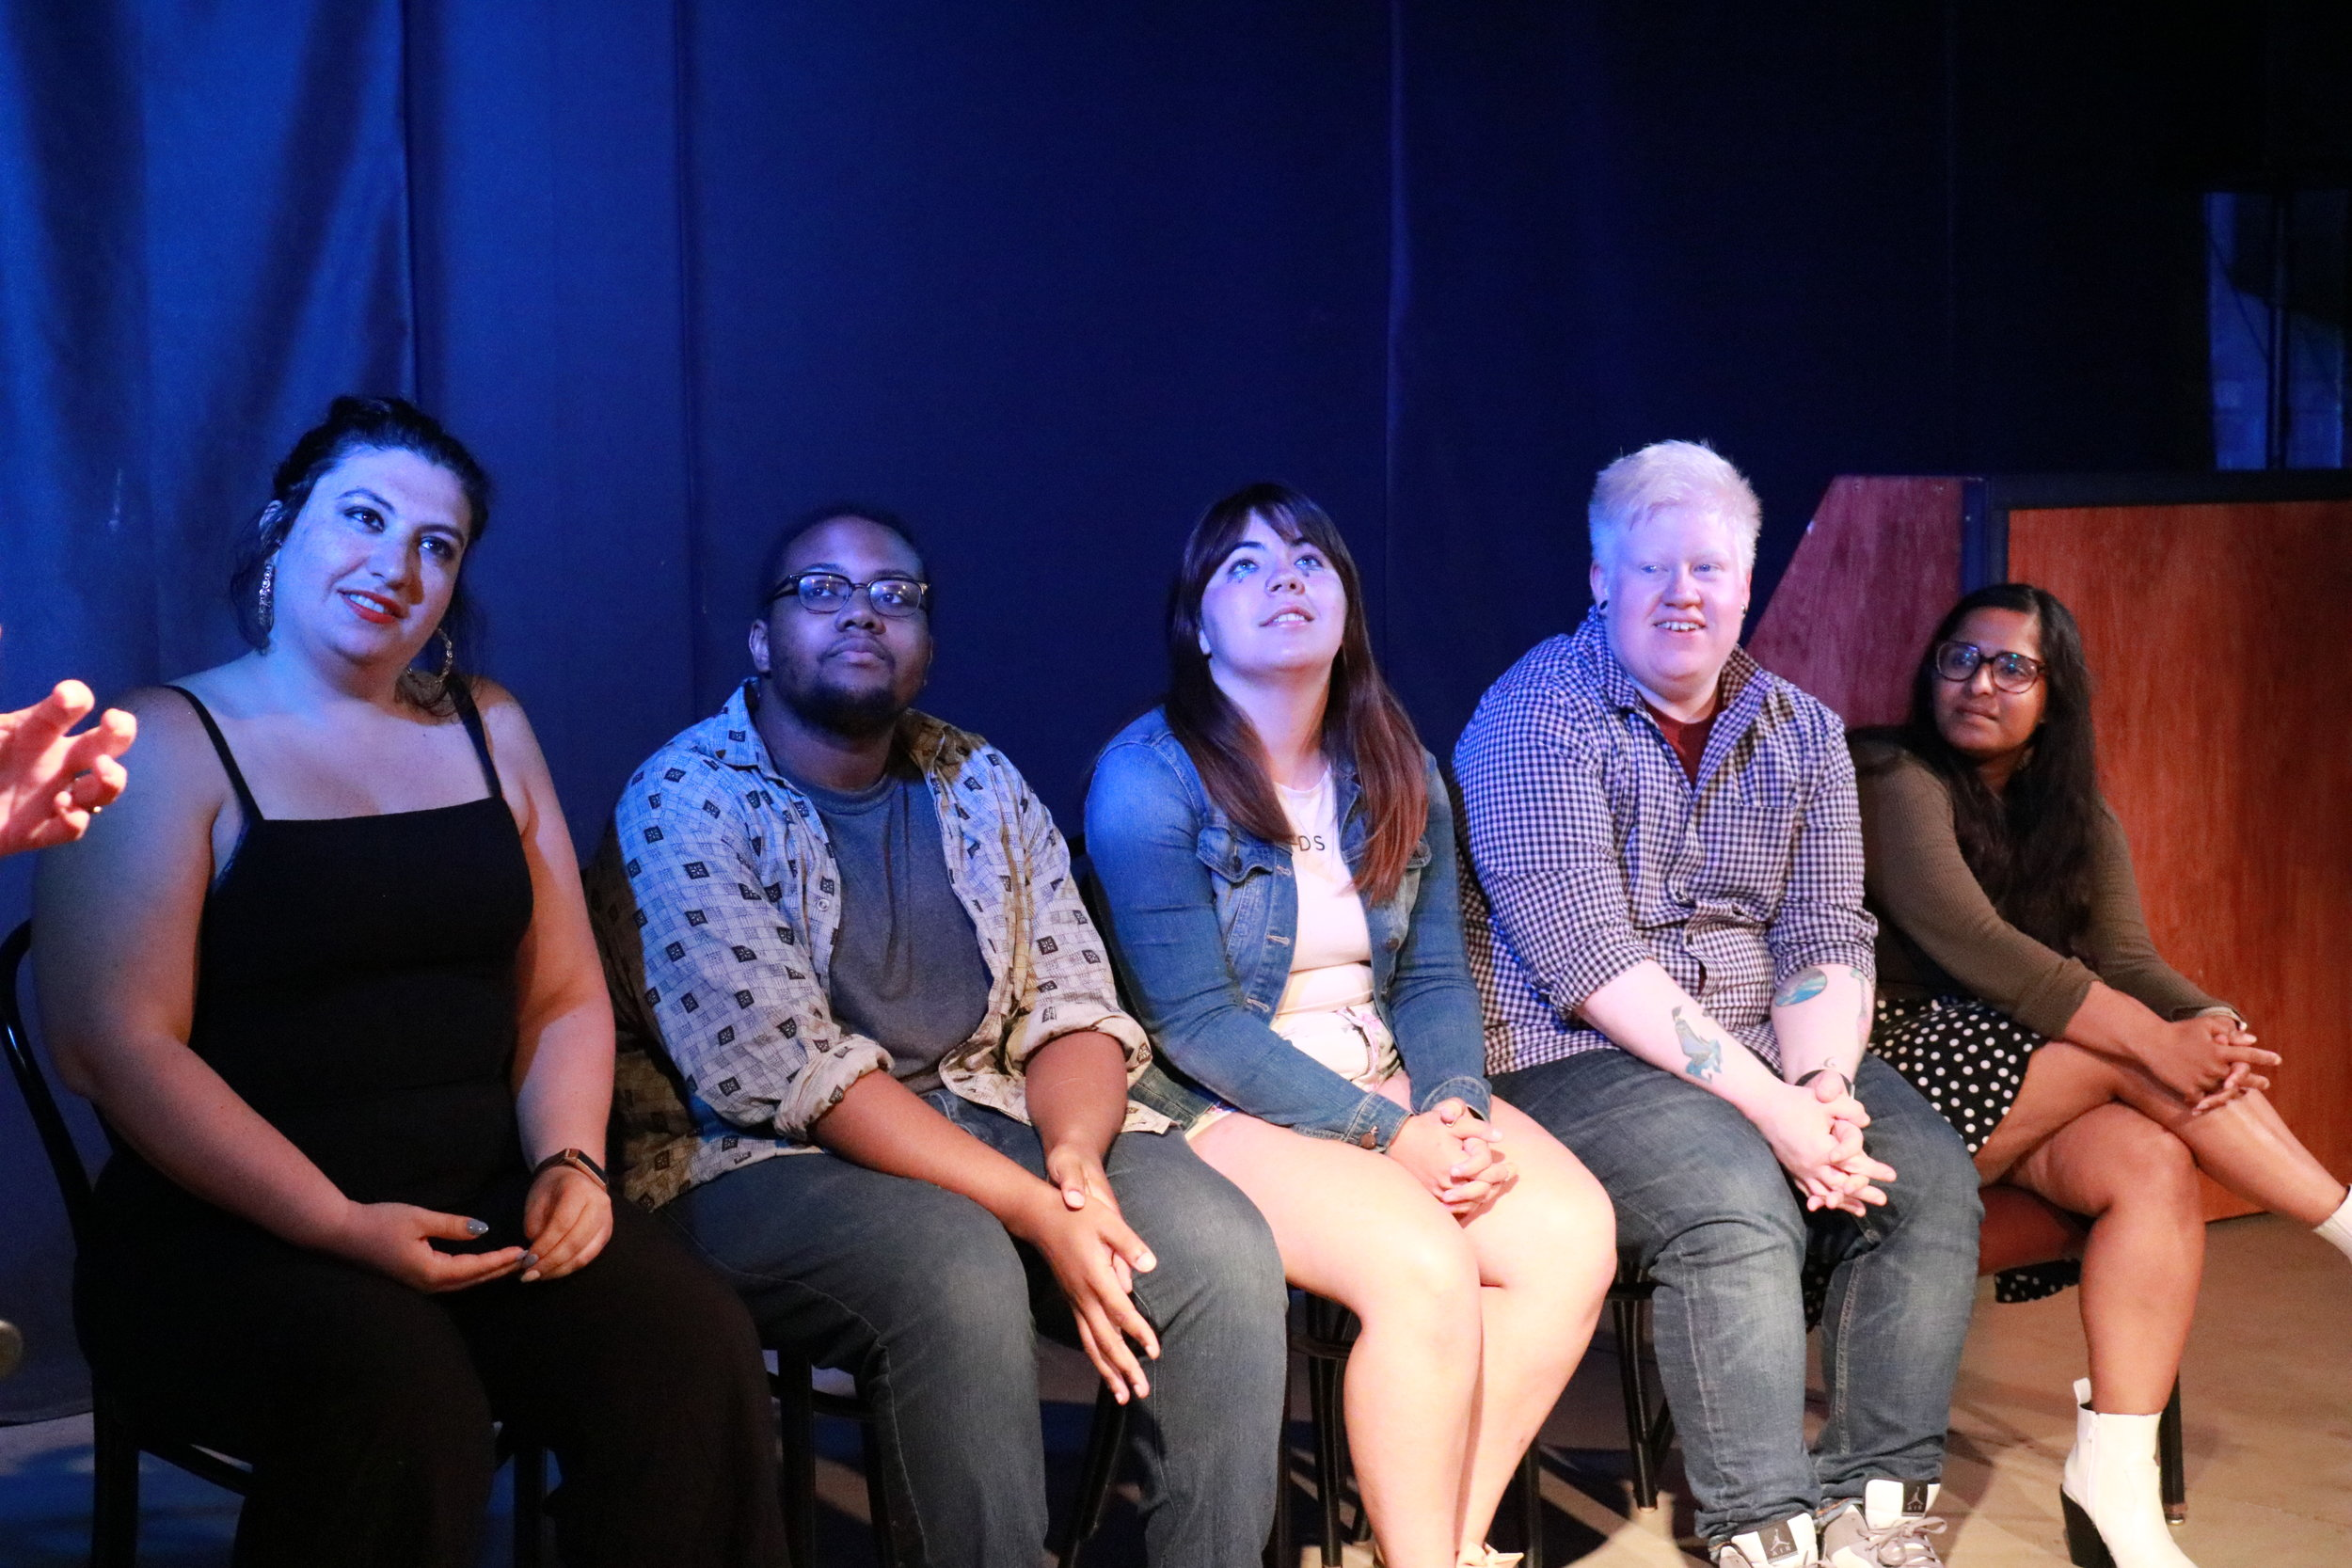 Performers from July's Who Dis variety show, including (right to left) Maria Konopken, Nick Graves, Daniella Mazzio, Simon Collier, and Med Indurti, talk about their comedy during the discussion near the end of the show. Photo by Maia McDonald